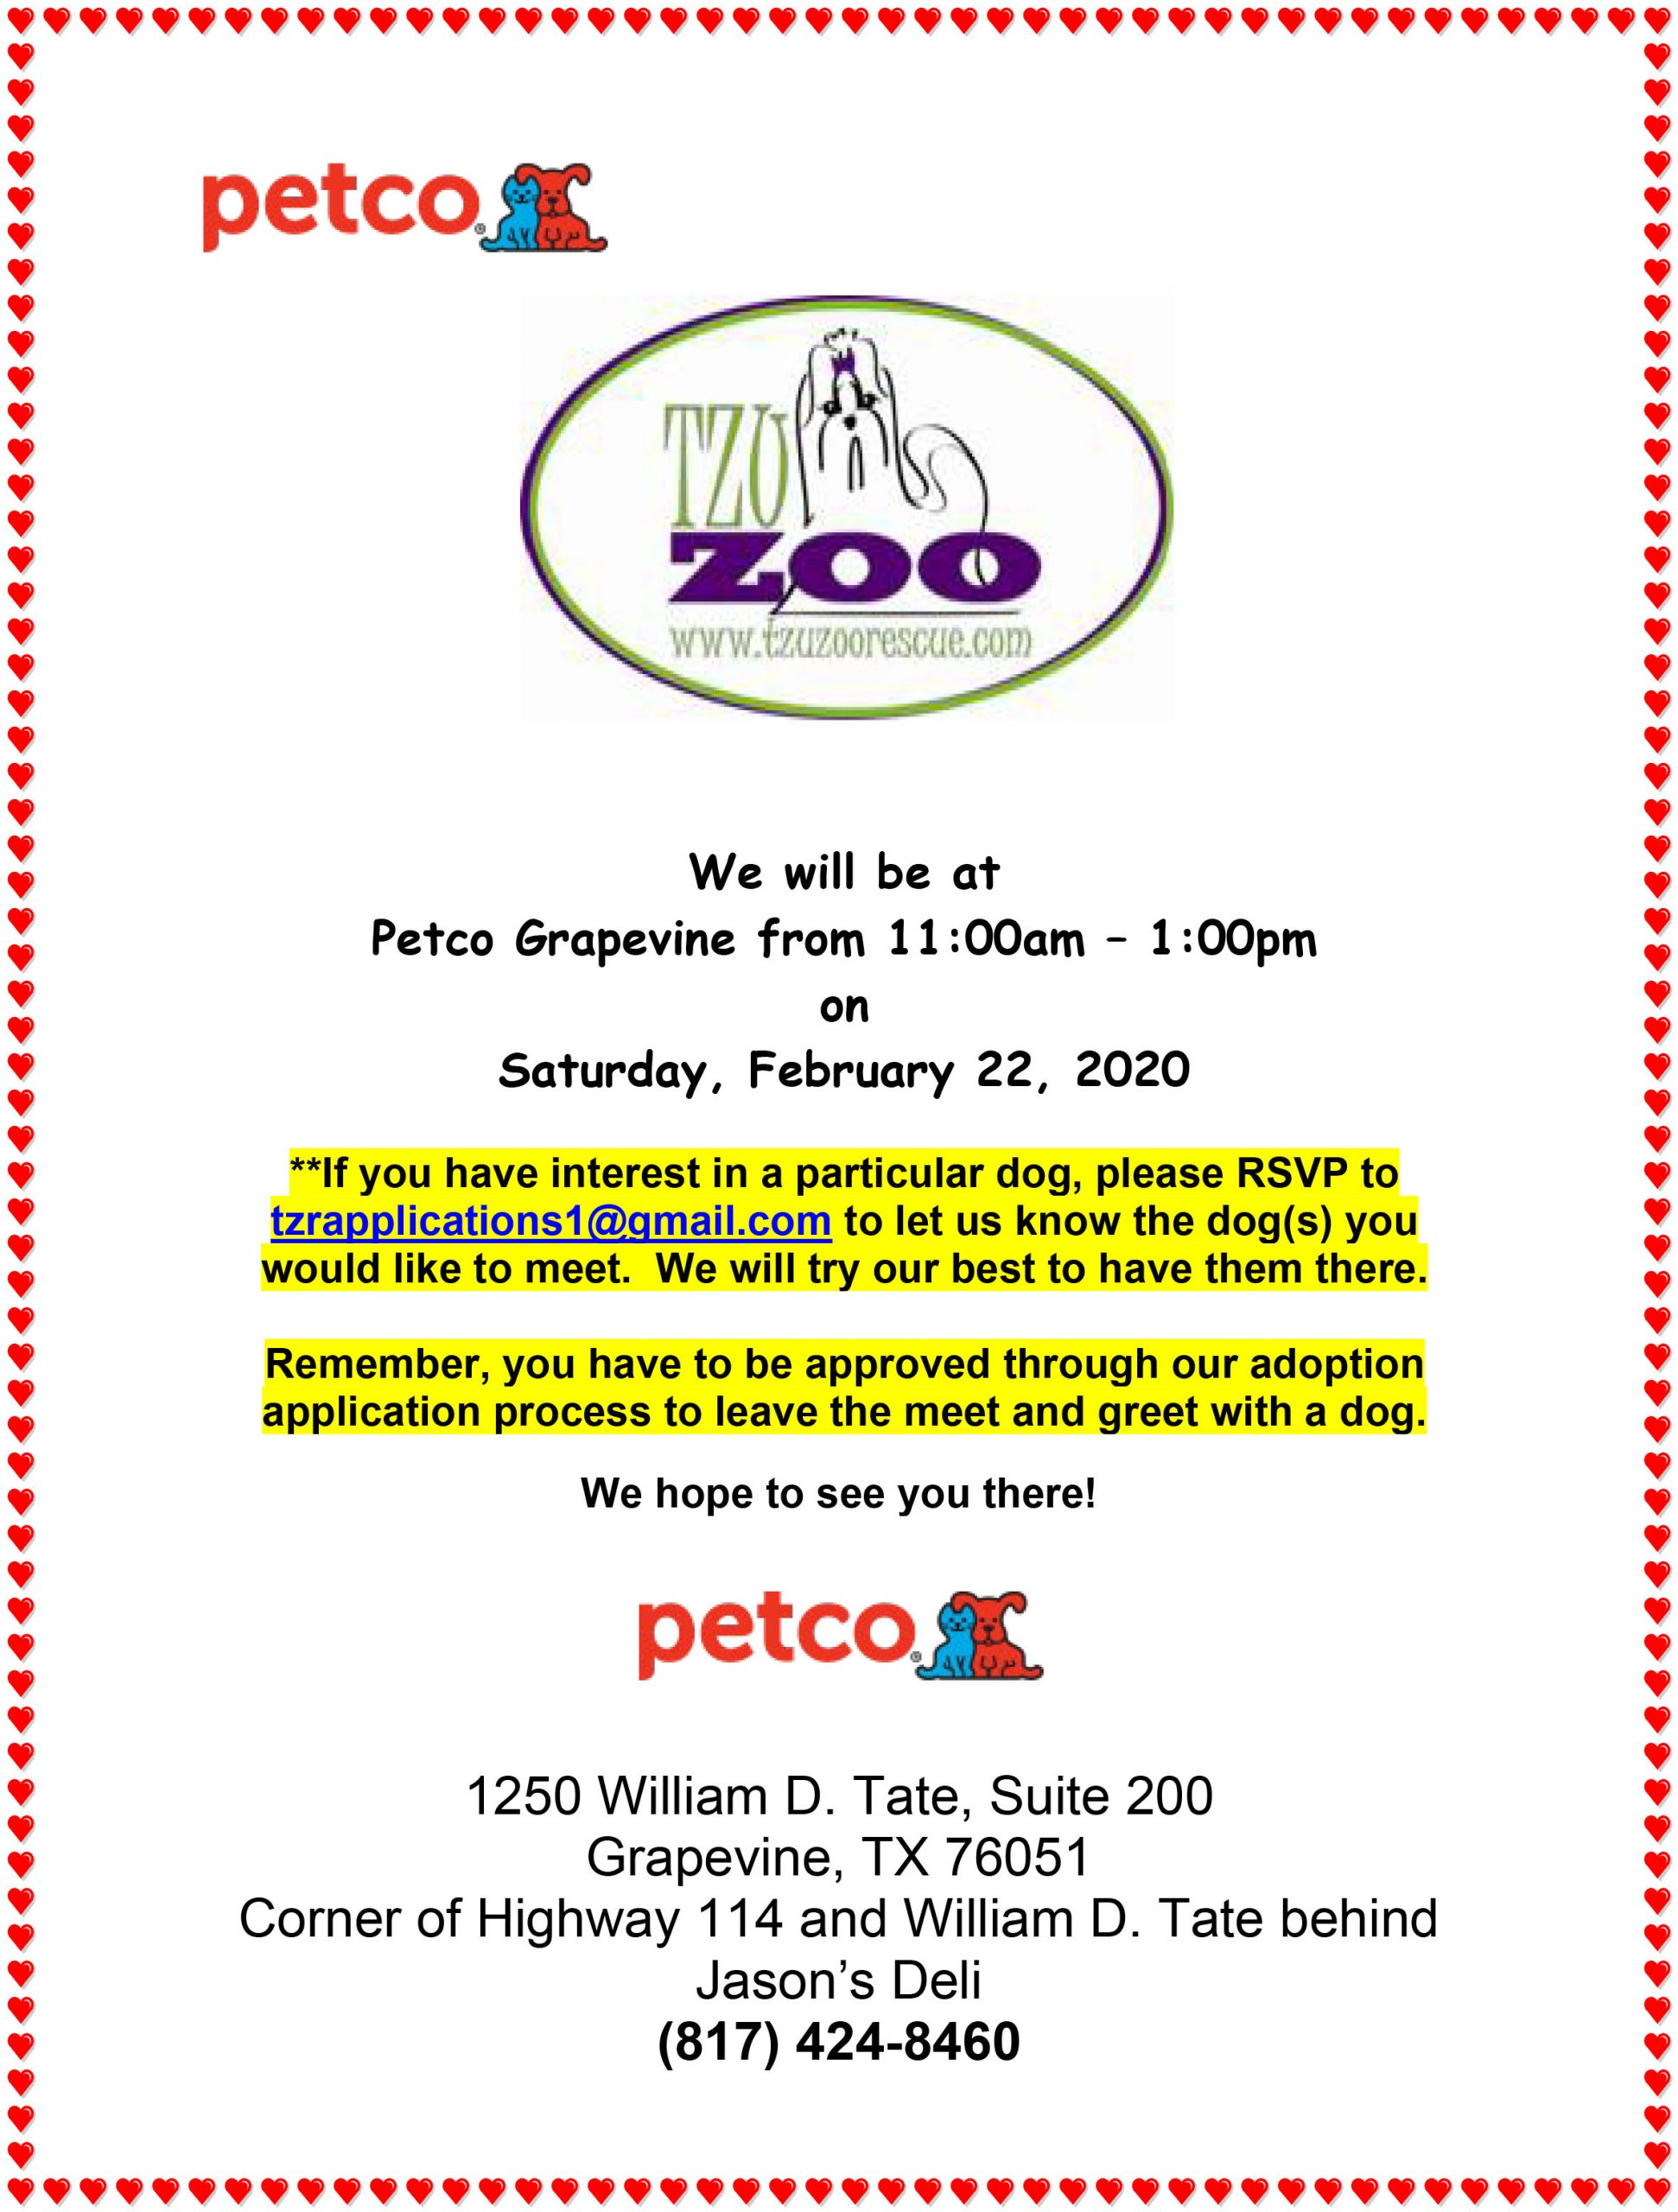 Meet & Greet, Petco, - Grapevine, TX